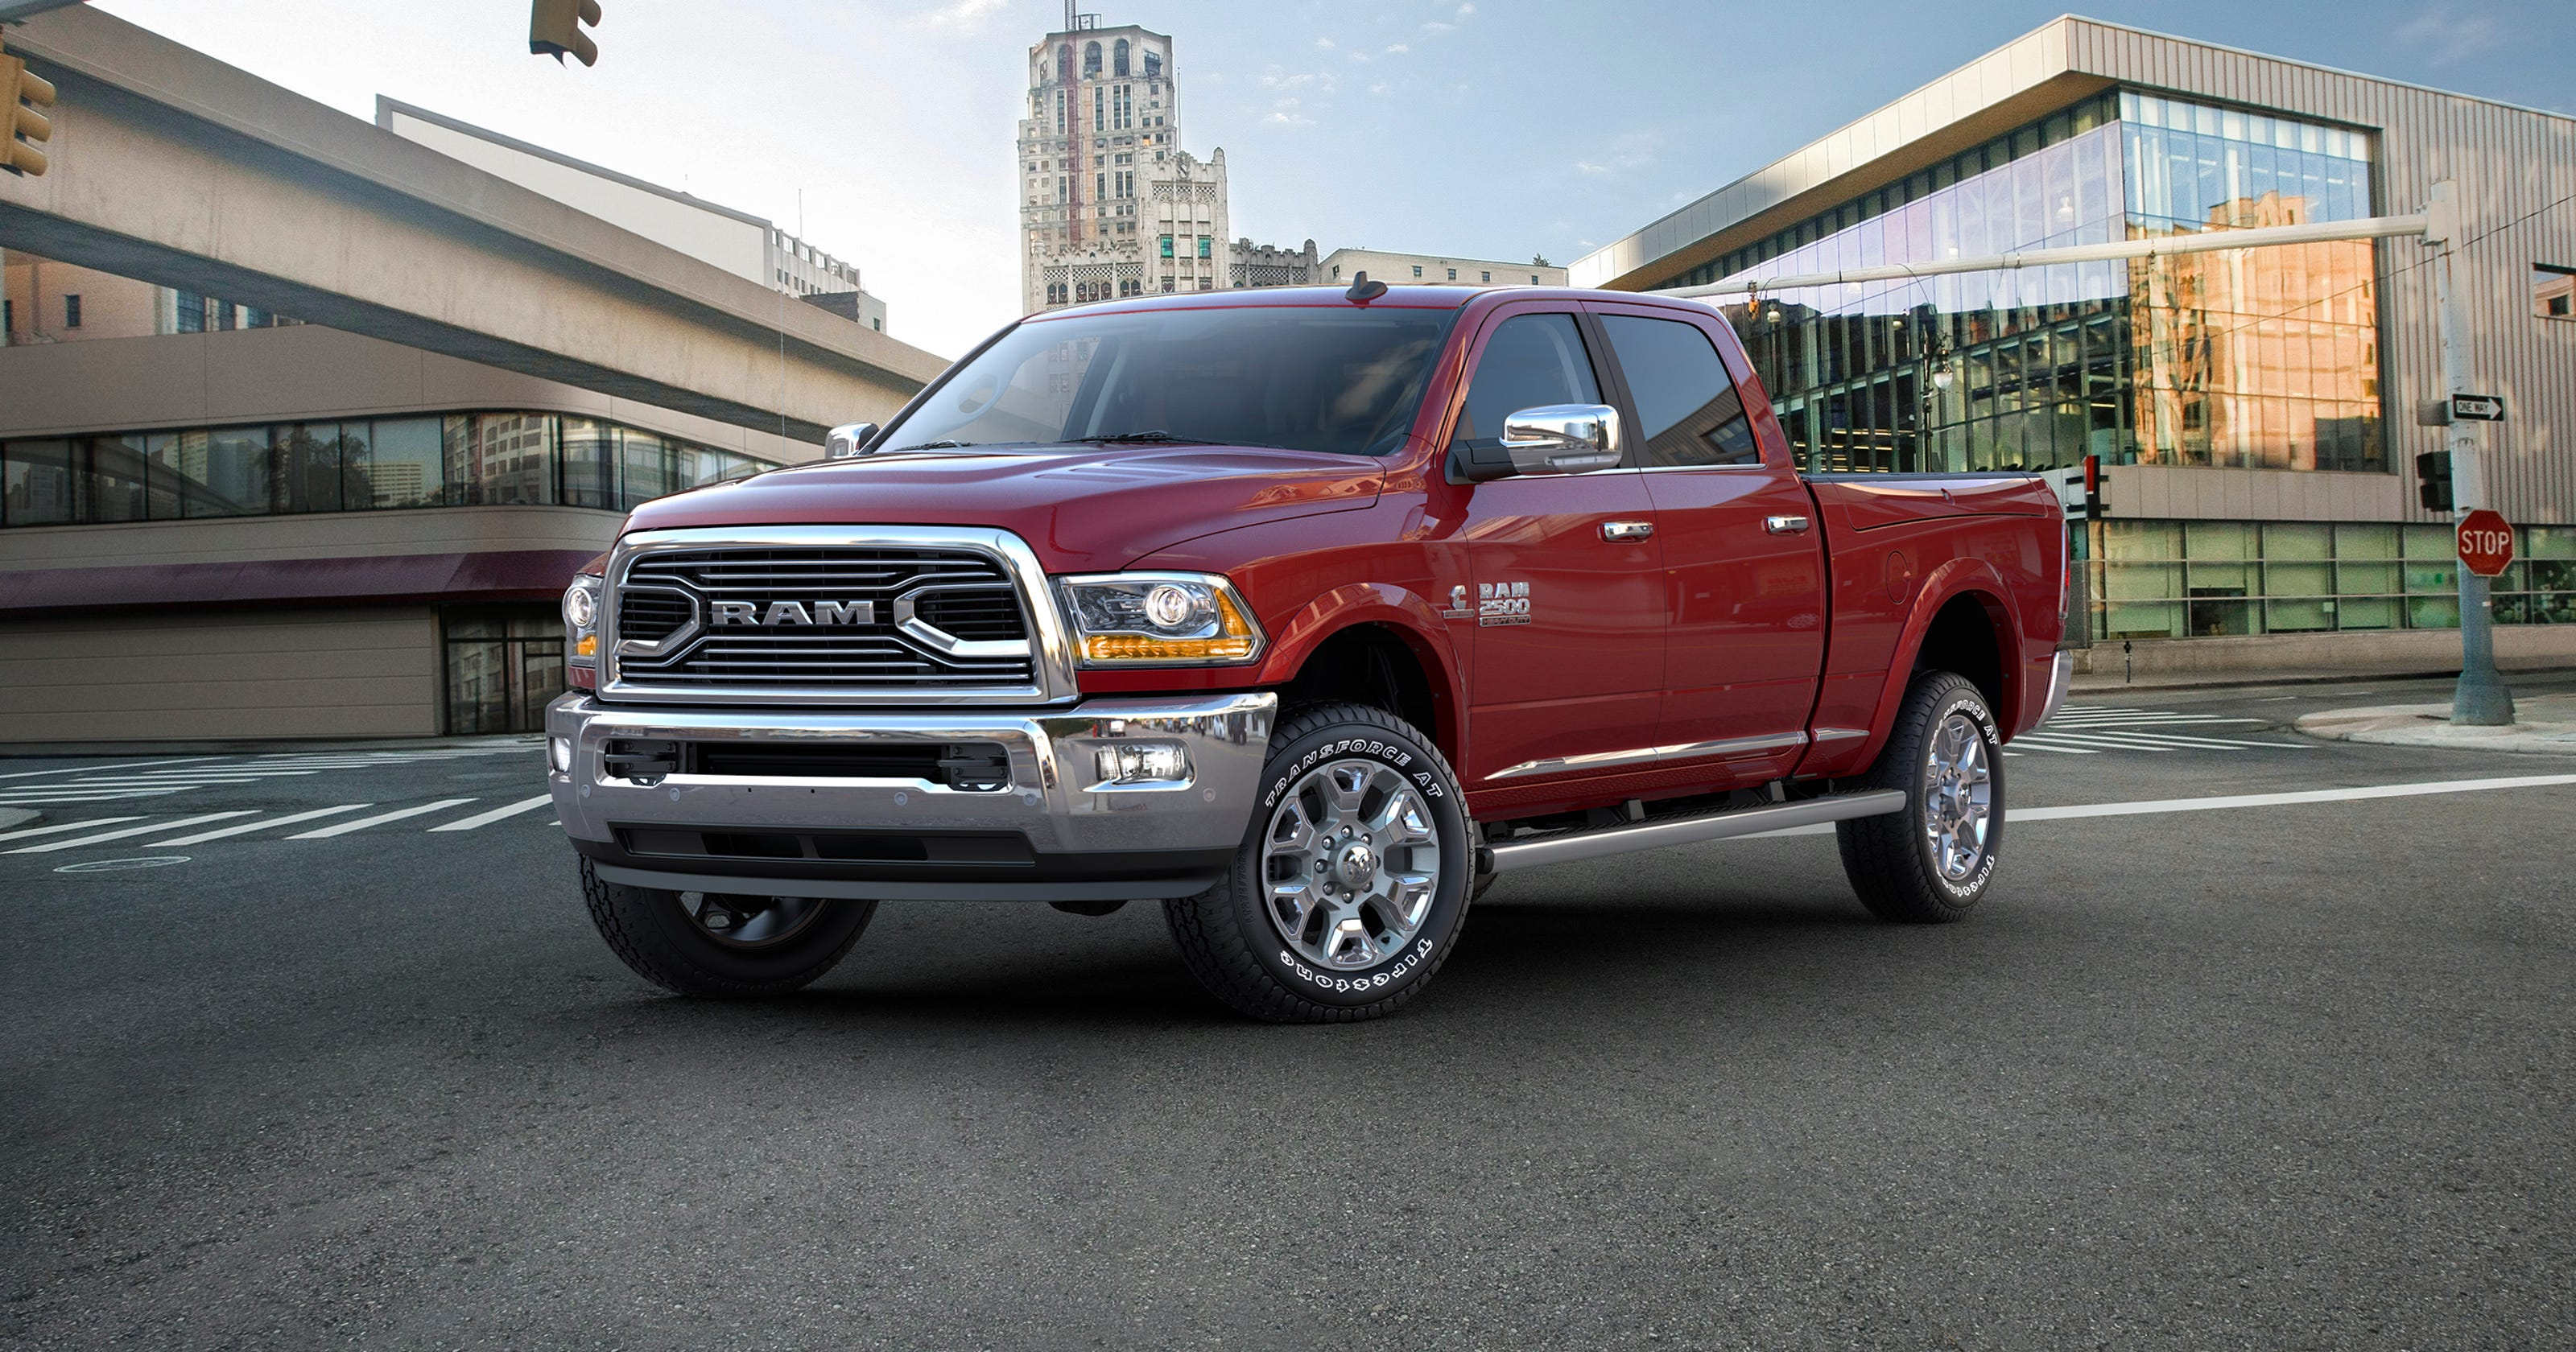 Fiat Chrysler Recall Automaker Recalls 18 Million Ram Pickups That Pickup Are Connected Together With The Switch Usually Can Shift Out Of Park